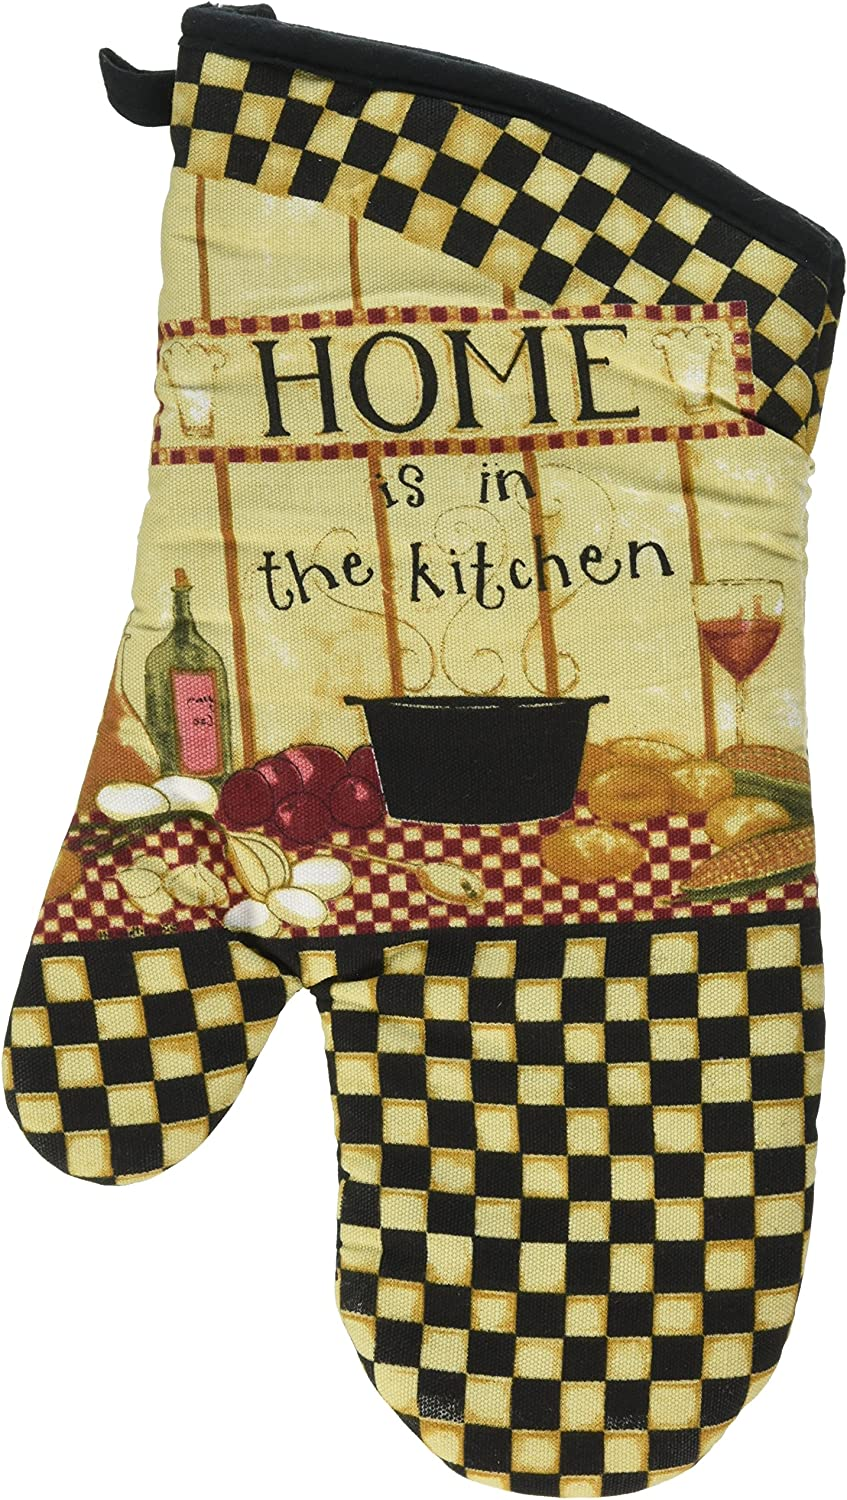 Kay Dee Designs Cotton Oven Mitt, Home is in The Kitchen